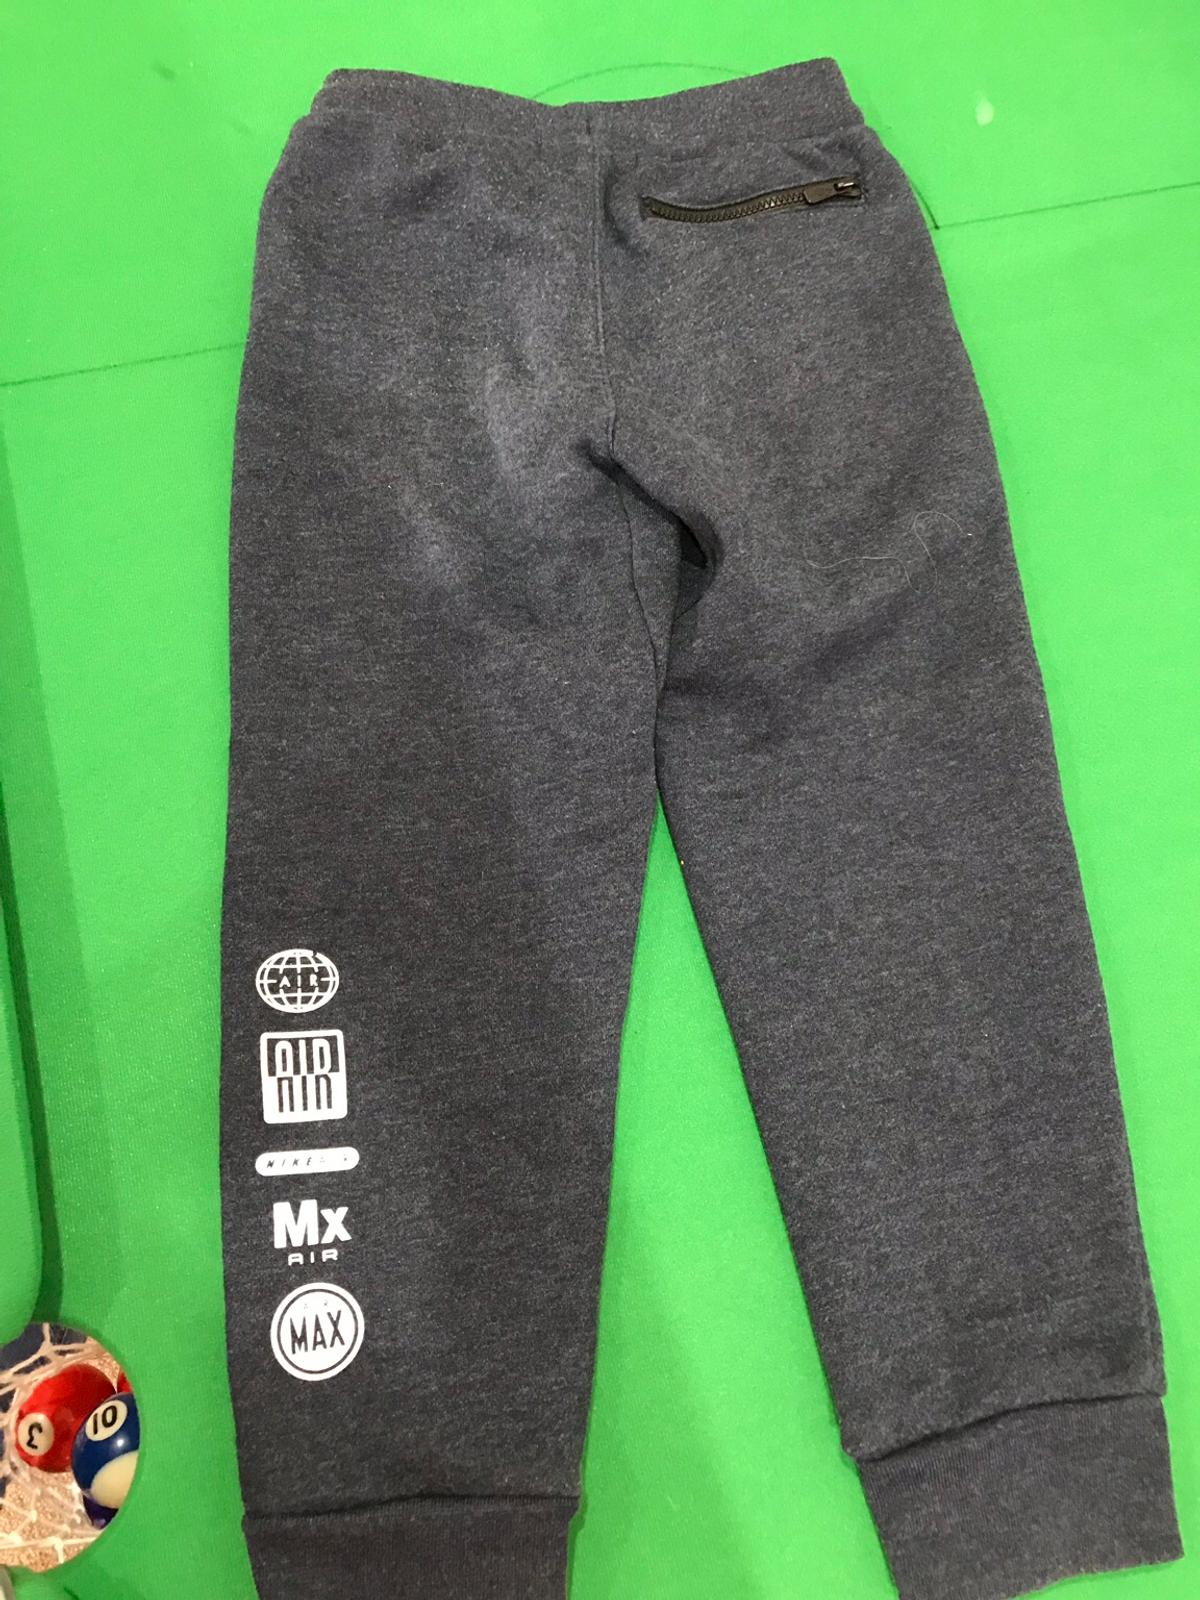 Boys Nike air joggers 5 6 years in DE75 Valley for £6.50 for